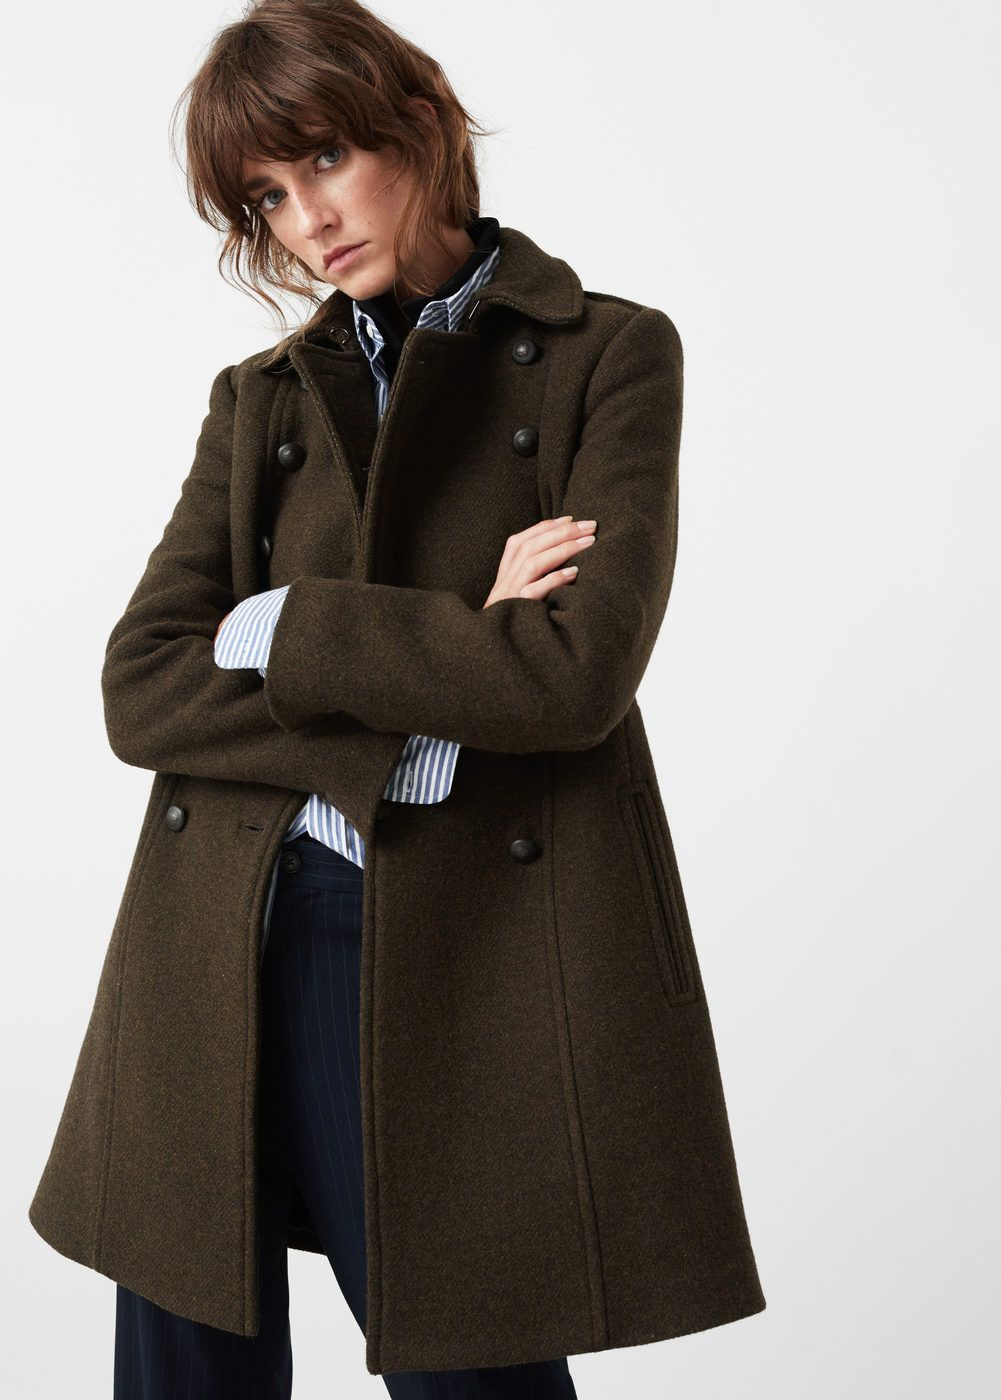 Military style wool coat - Coats for Woman | MANGO USA